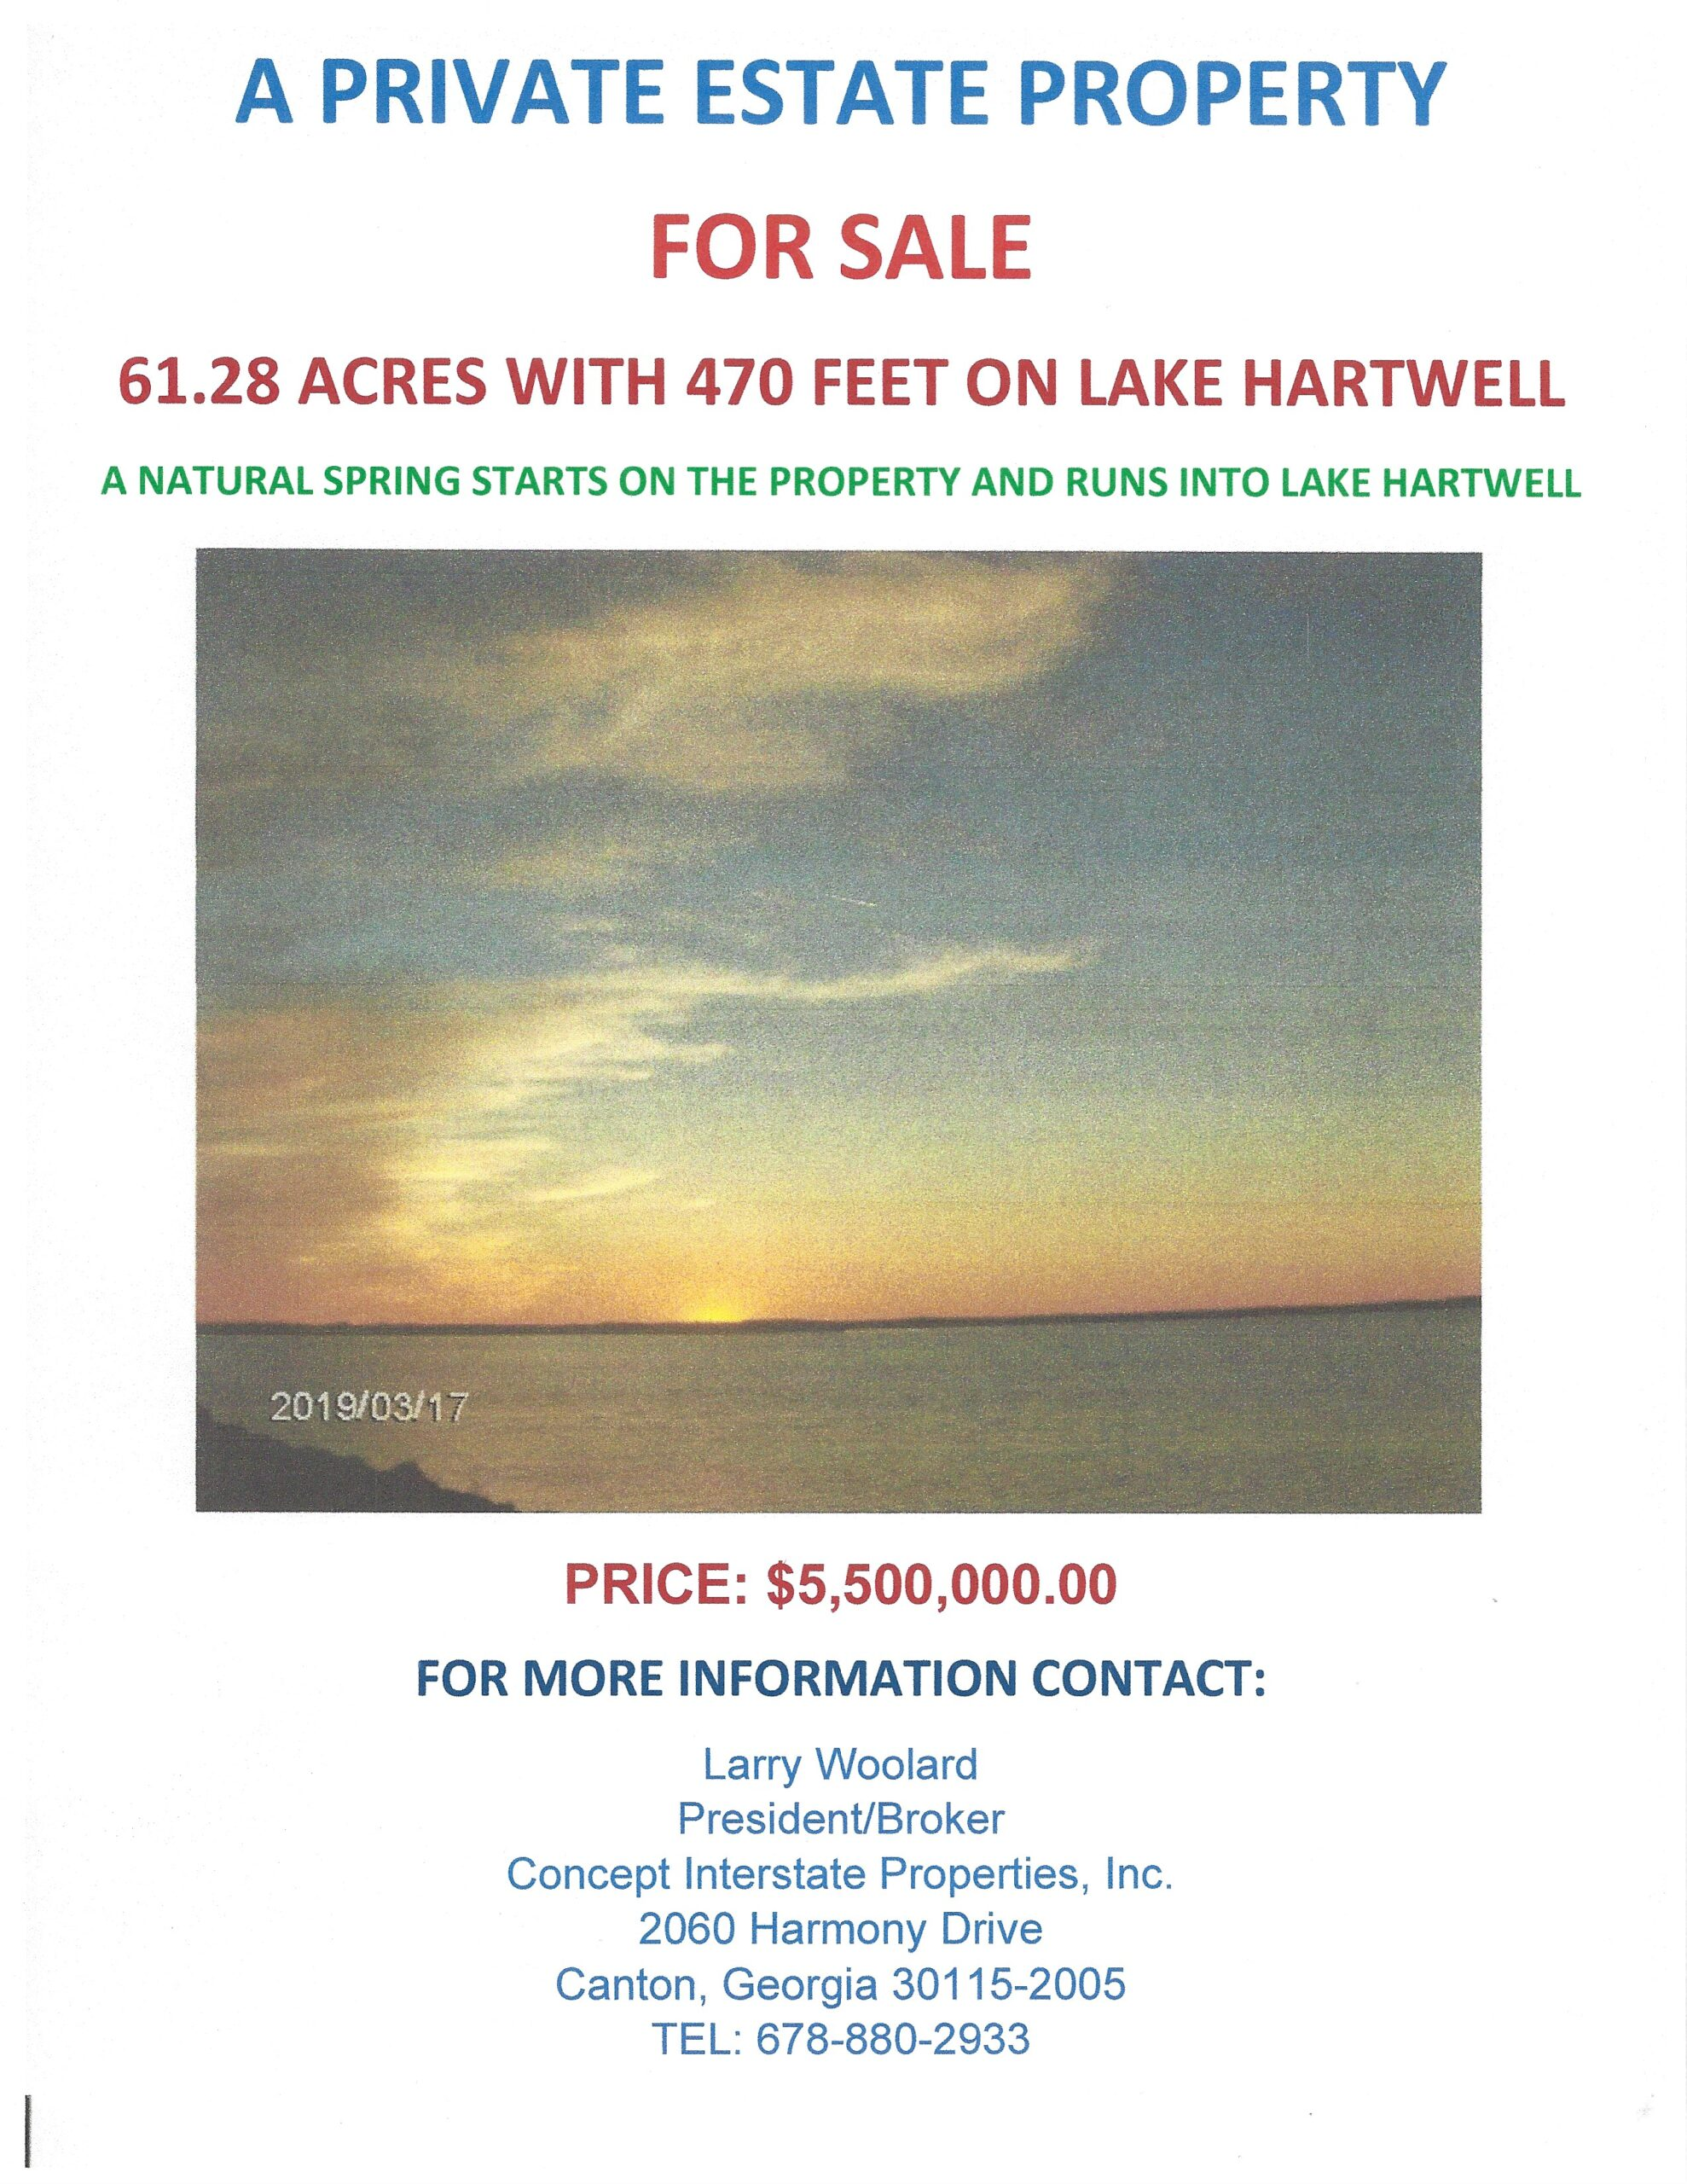 61+ ACRES with 470 FEET on PRISTINE LAKE HARTWELL